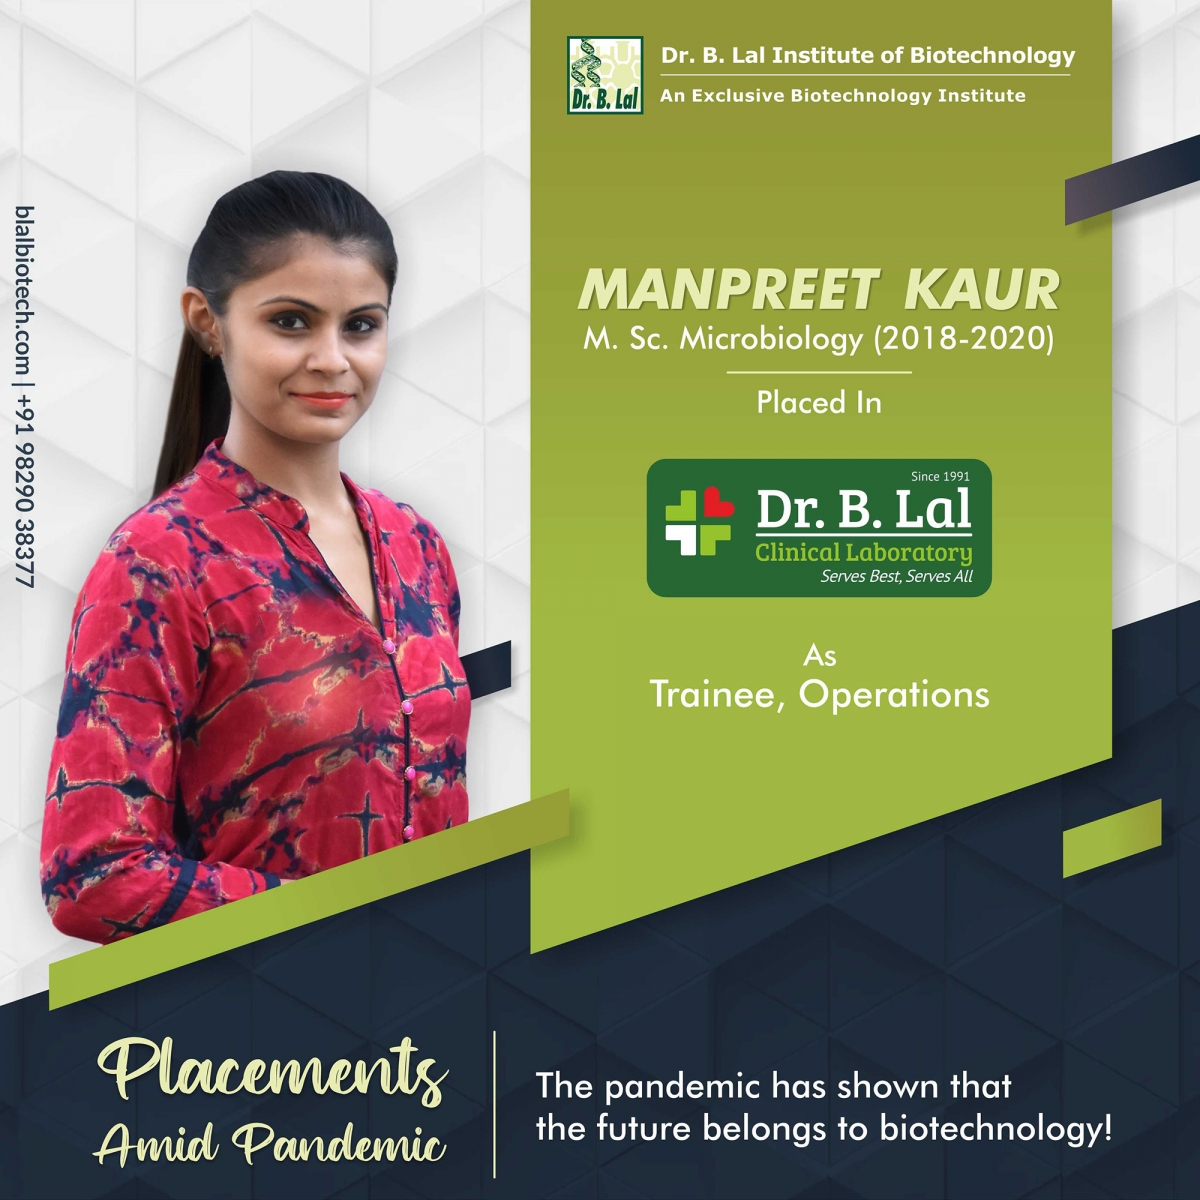 Manpreet Kaur | Placements Amid Pandemic | Dr. B. Lal Institute of Biotechnology